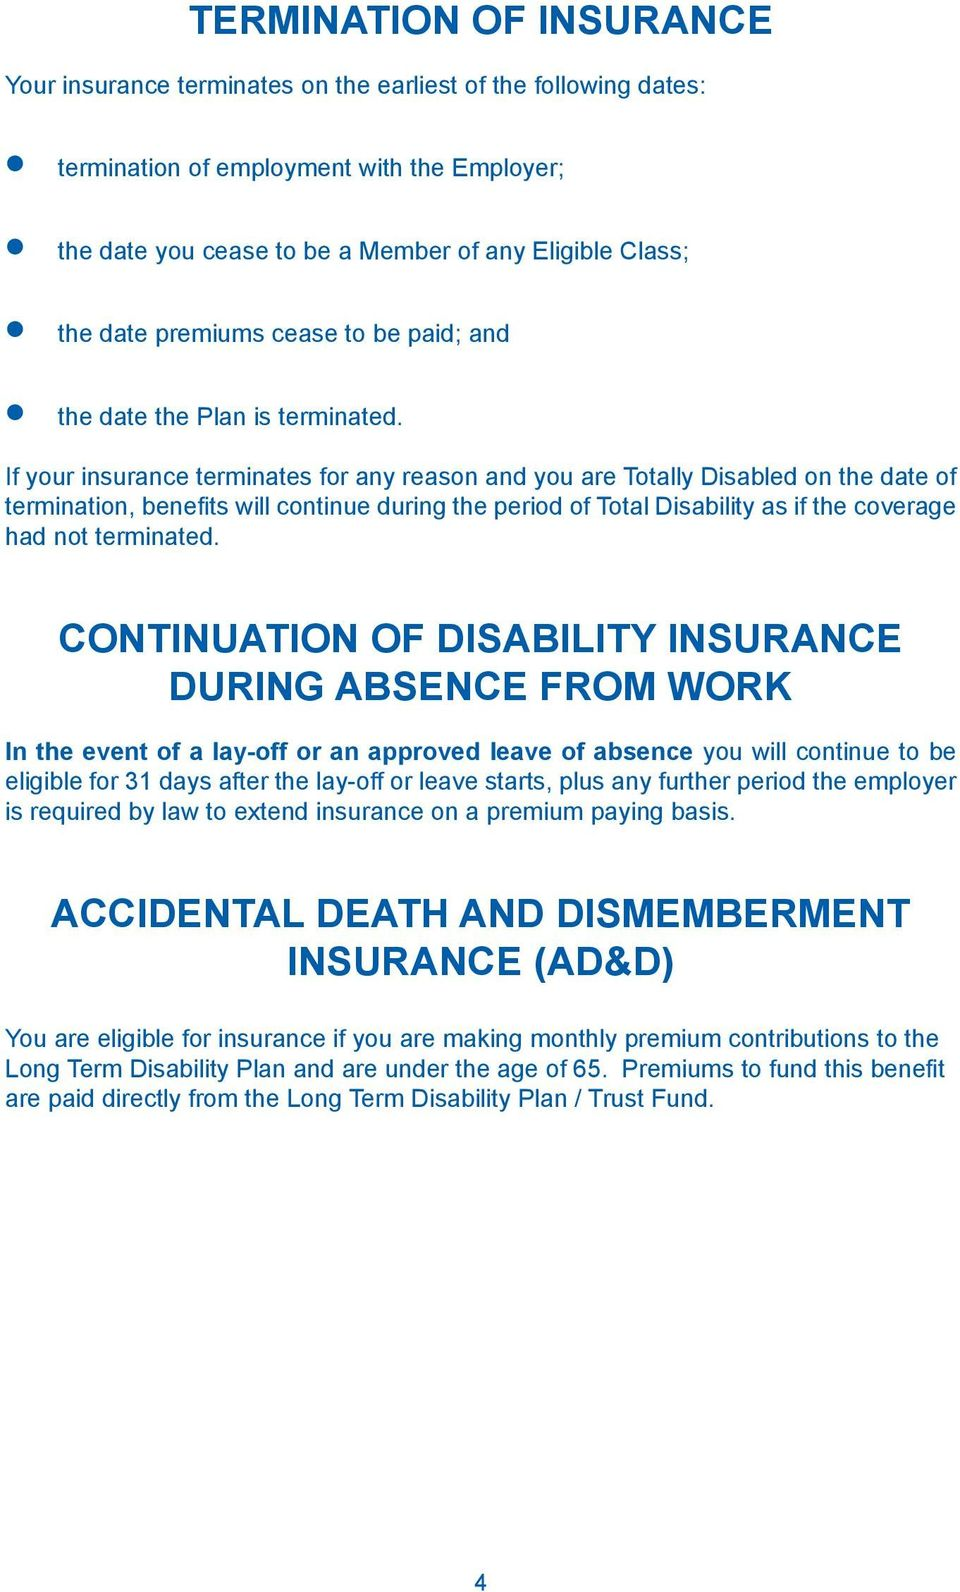 If your insurance terminates for any reason and you are Totally Disabled on the date of termination, benefits will continue during the period of Total Disability as if the coverage had not terminated.